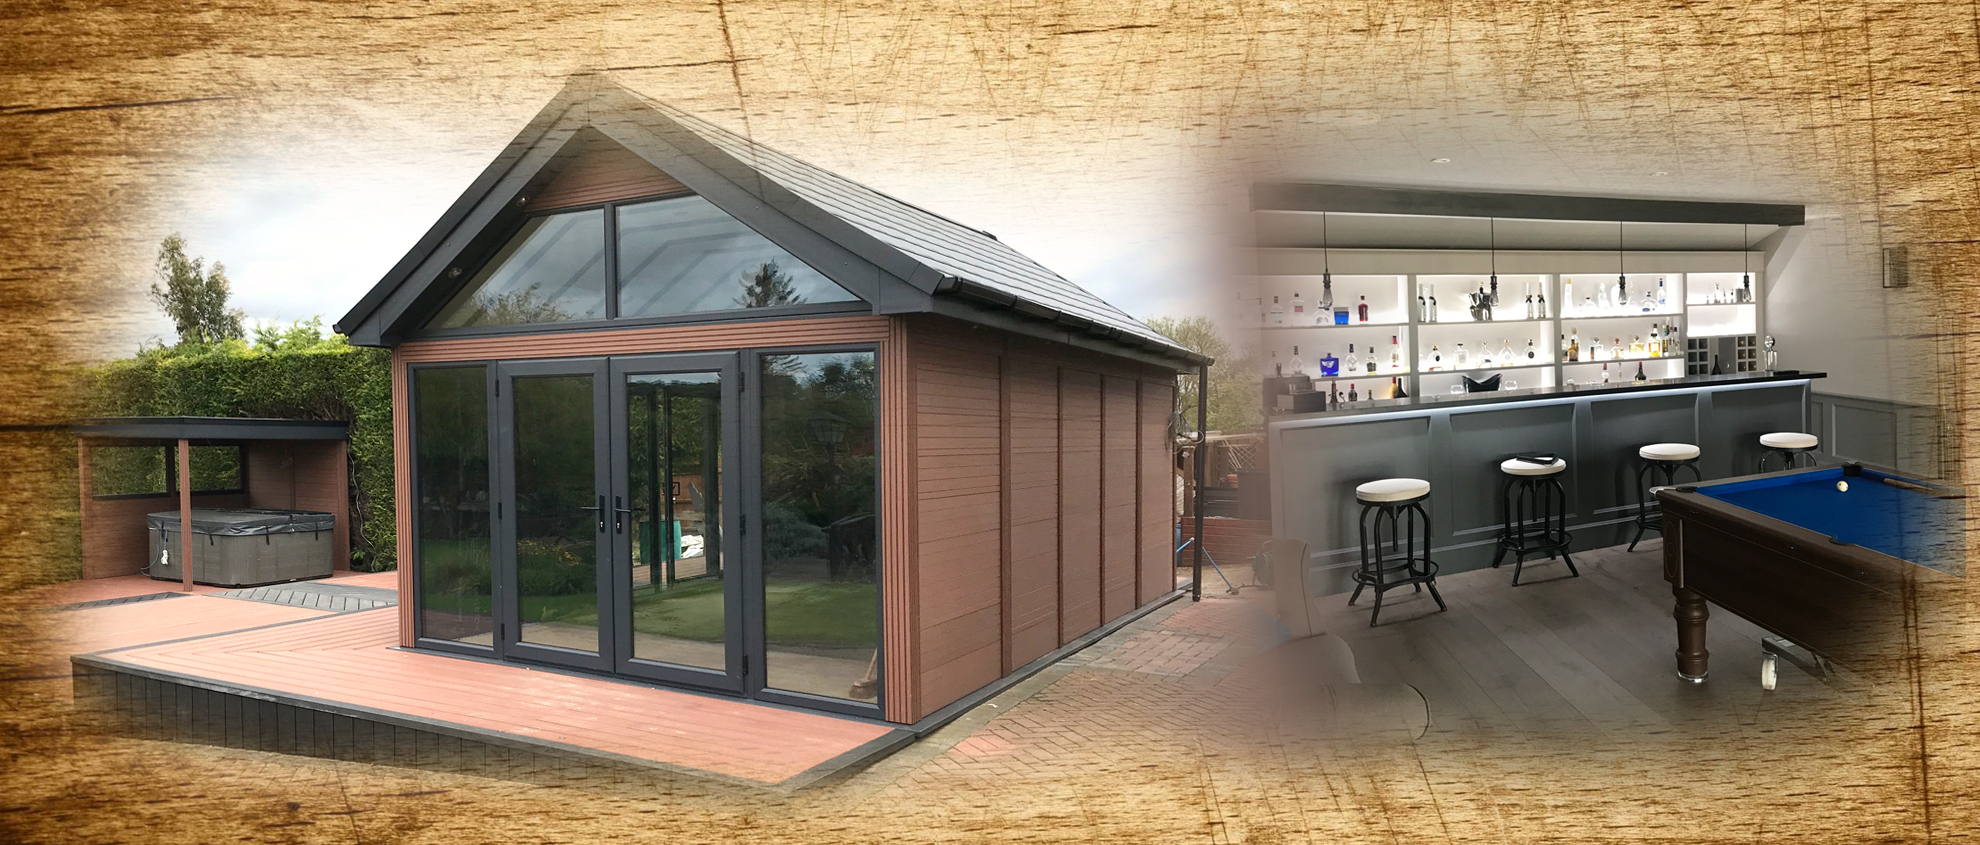 Garden Rooms Homepage Image 1.jpg